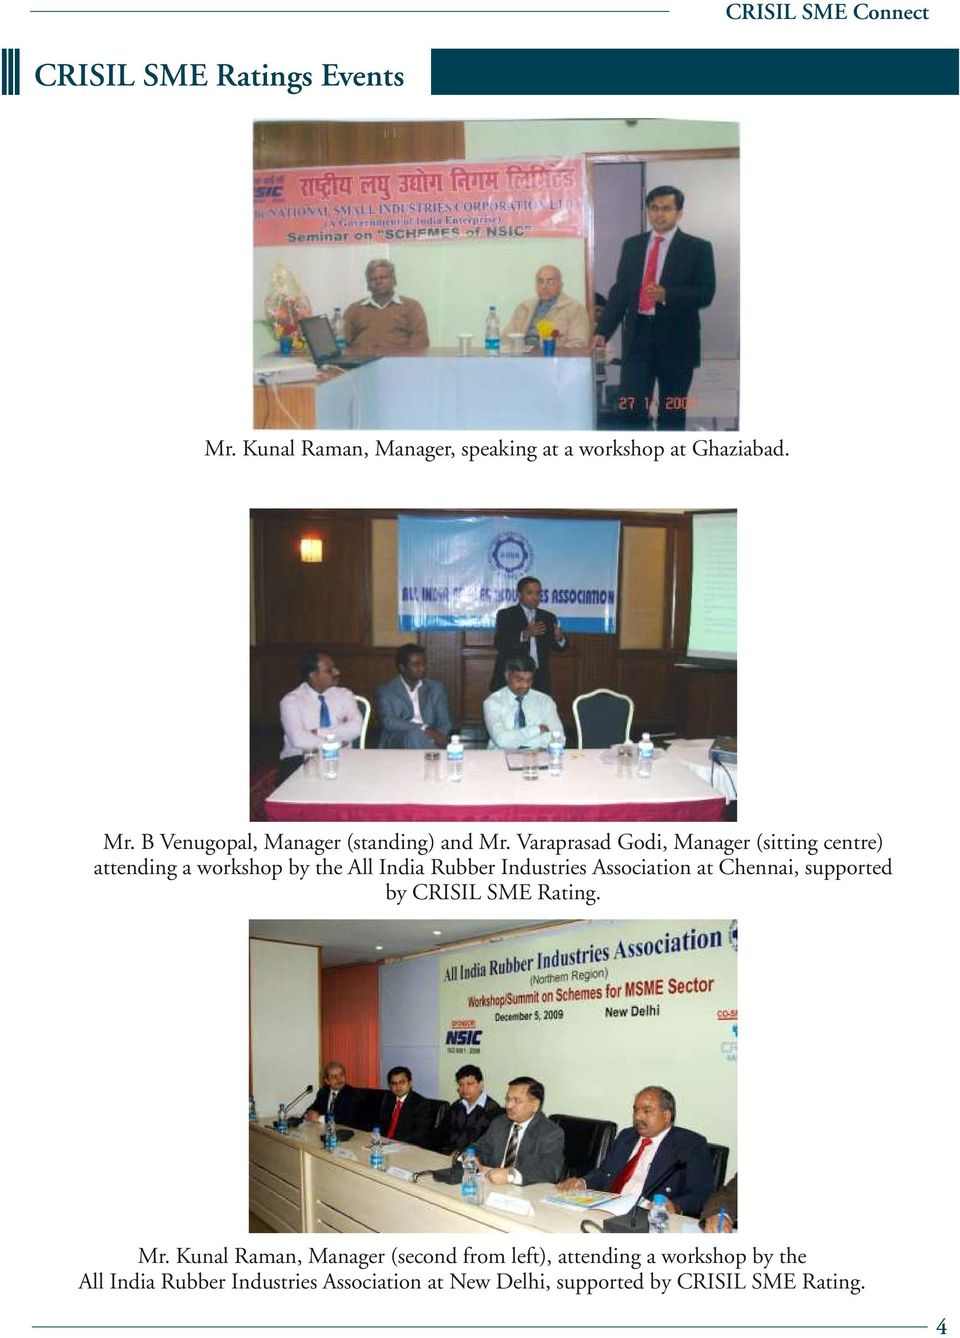 Association at Chennai, supported by CRISIL SME. Mr.